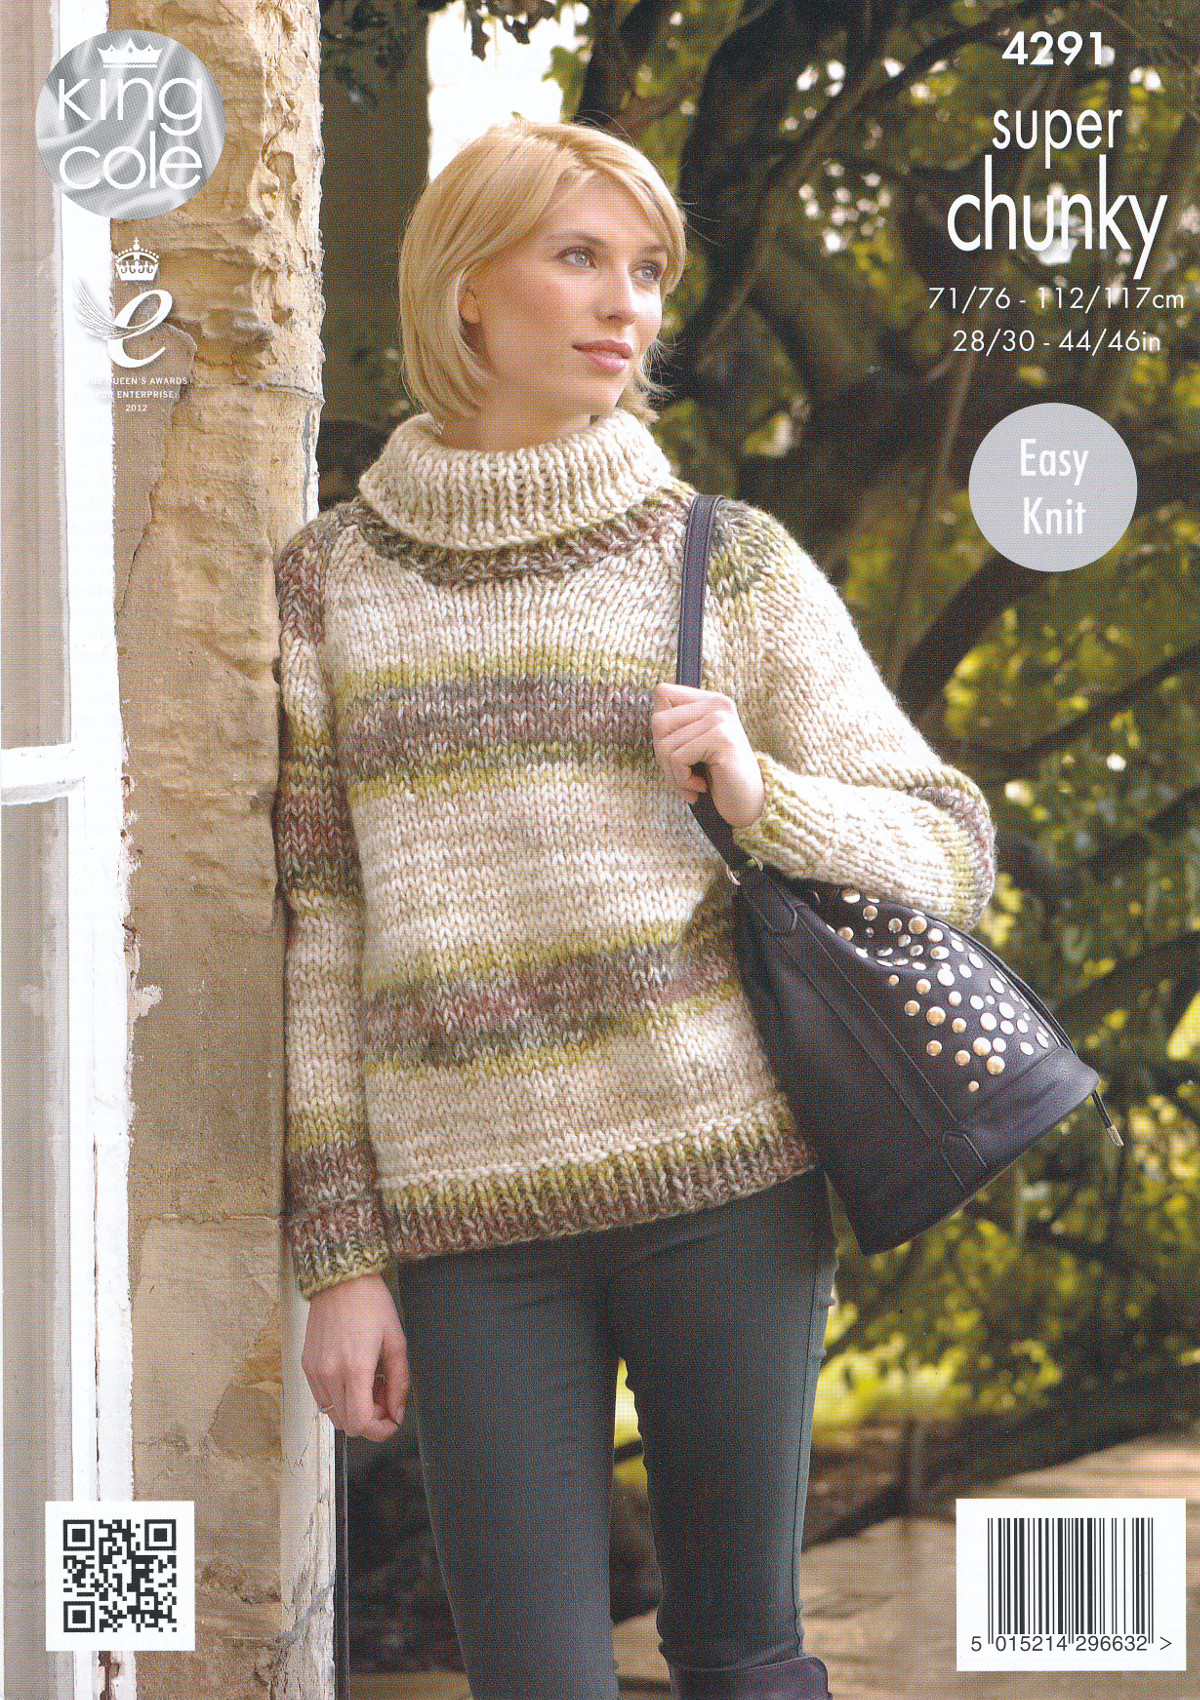 Ladies Super Chunky Knitting Pattern King Cole Polo Neck Jumper Cardigan 4291...